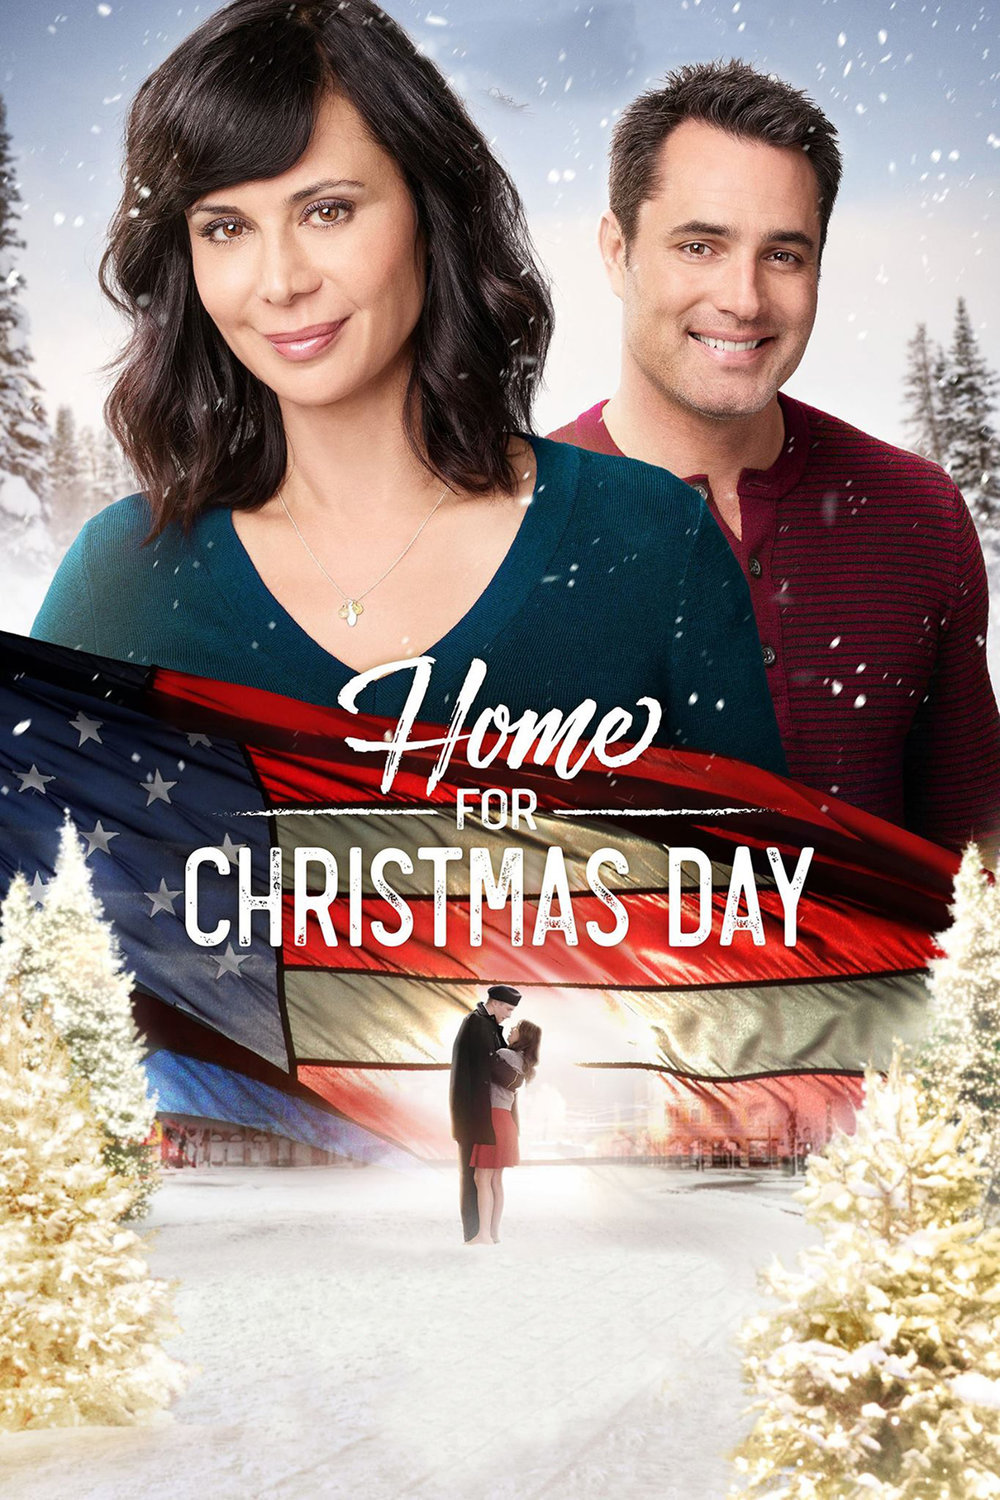 Home For Christmas Day Clean Poster small.jpg